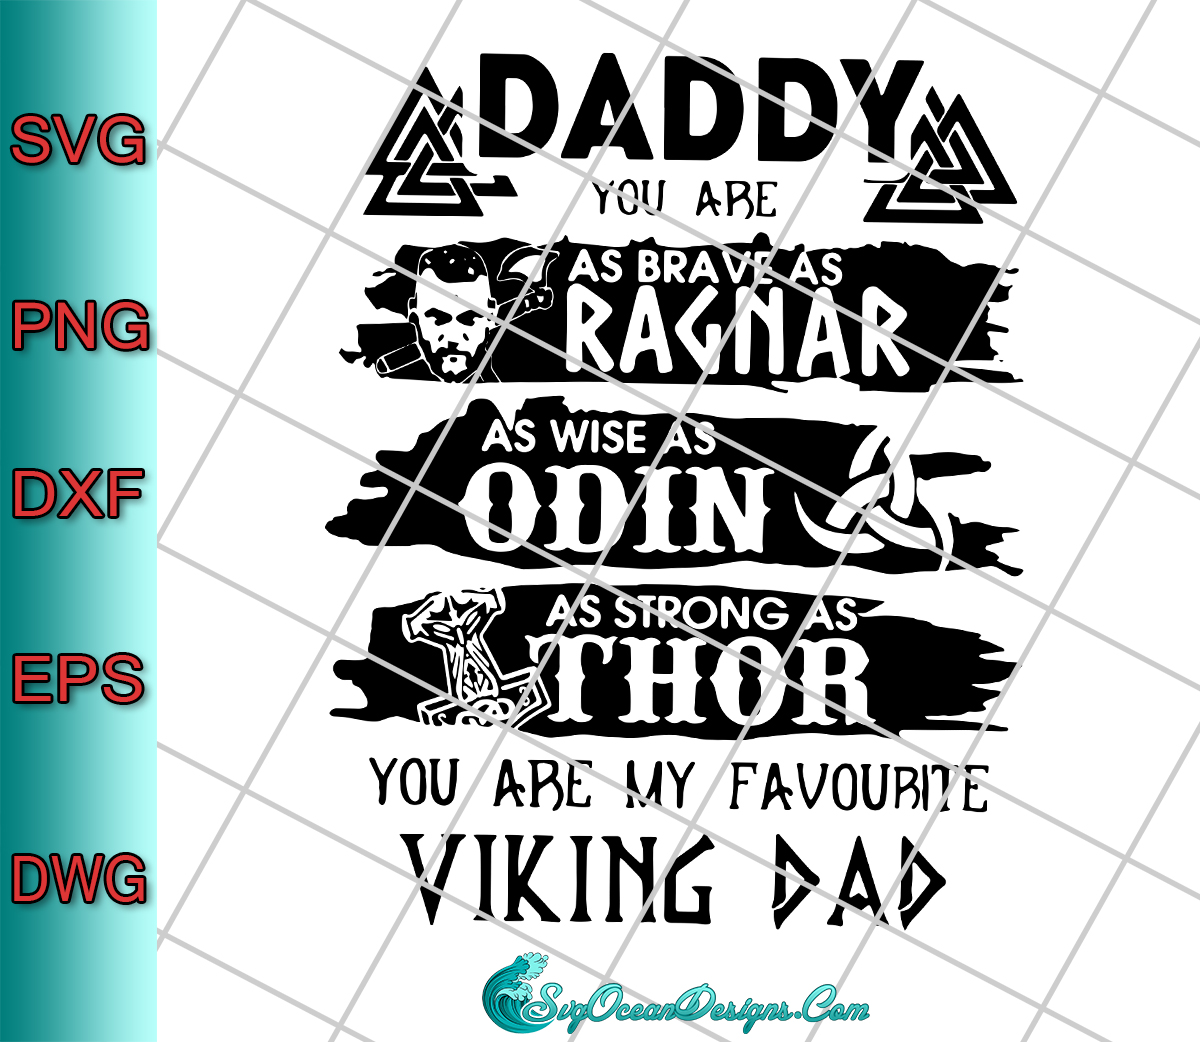 Daddy You Are As Brave As Ragnar As Wise As Odin As Strong As Thor Svg Png Dxf Eps Cut File Designs Digital Download